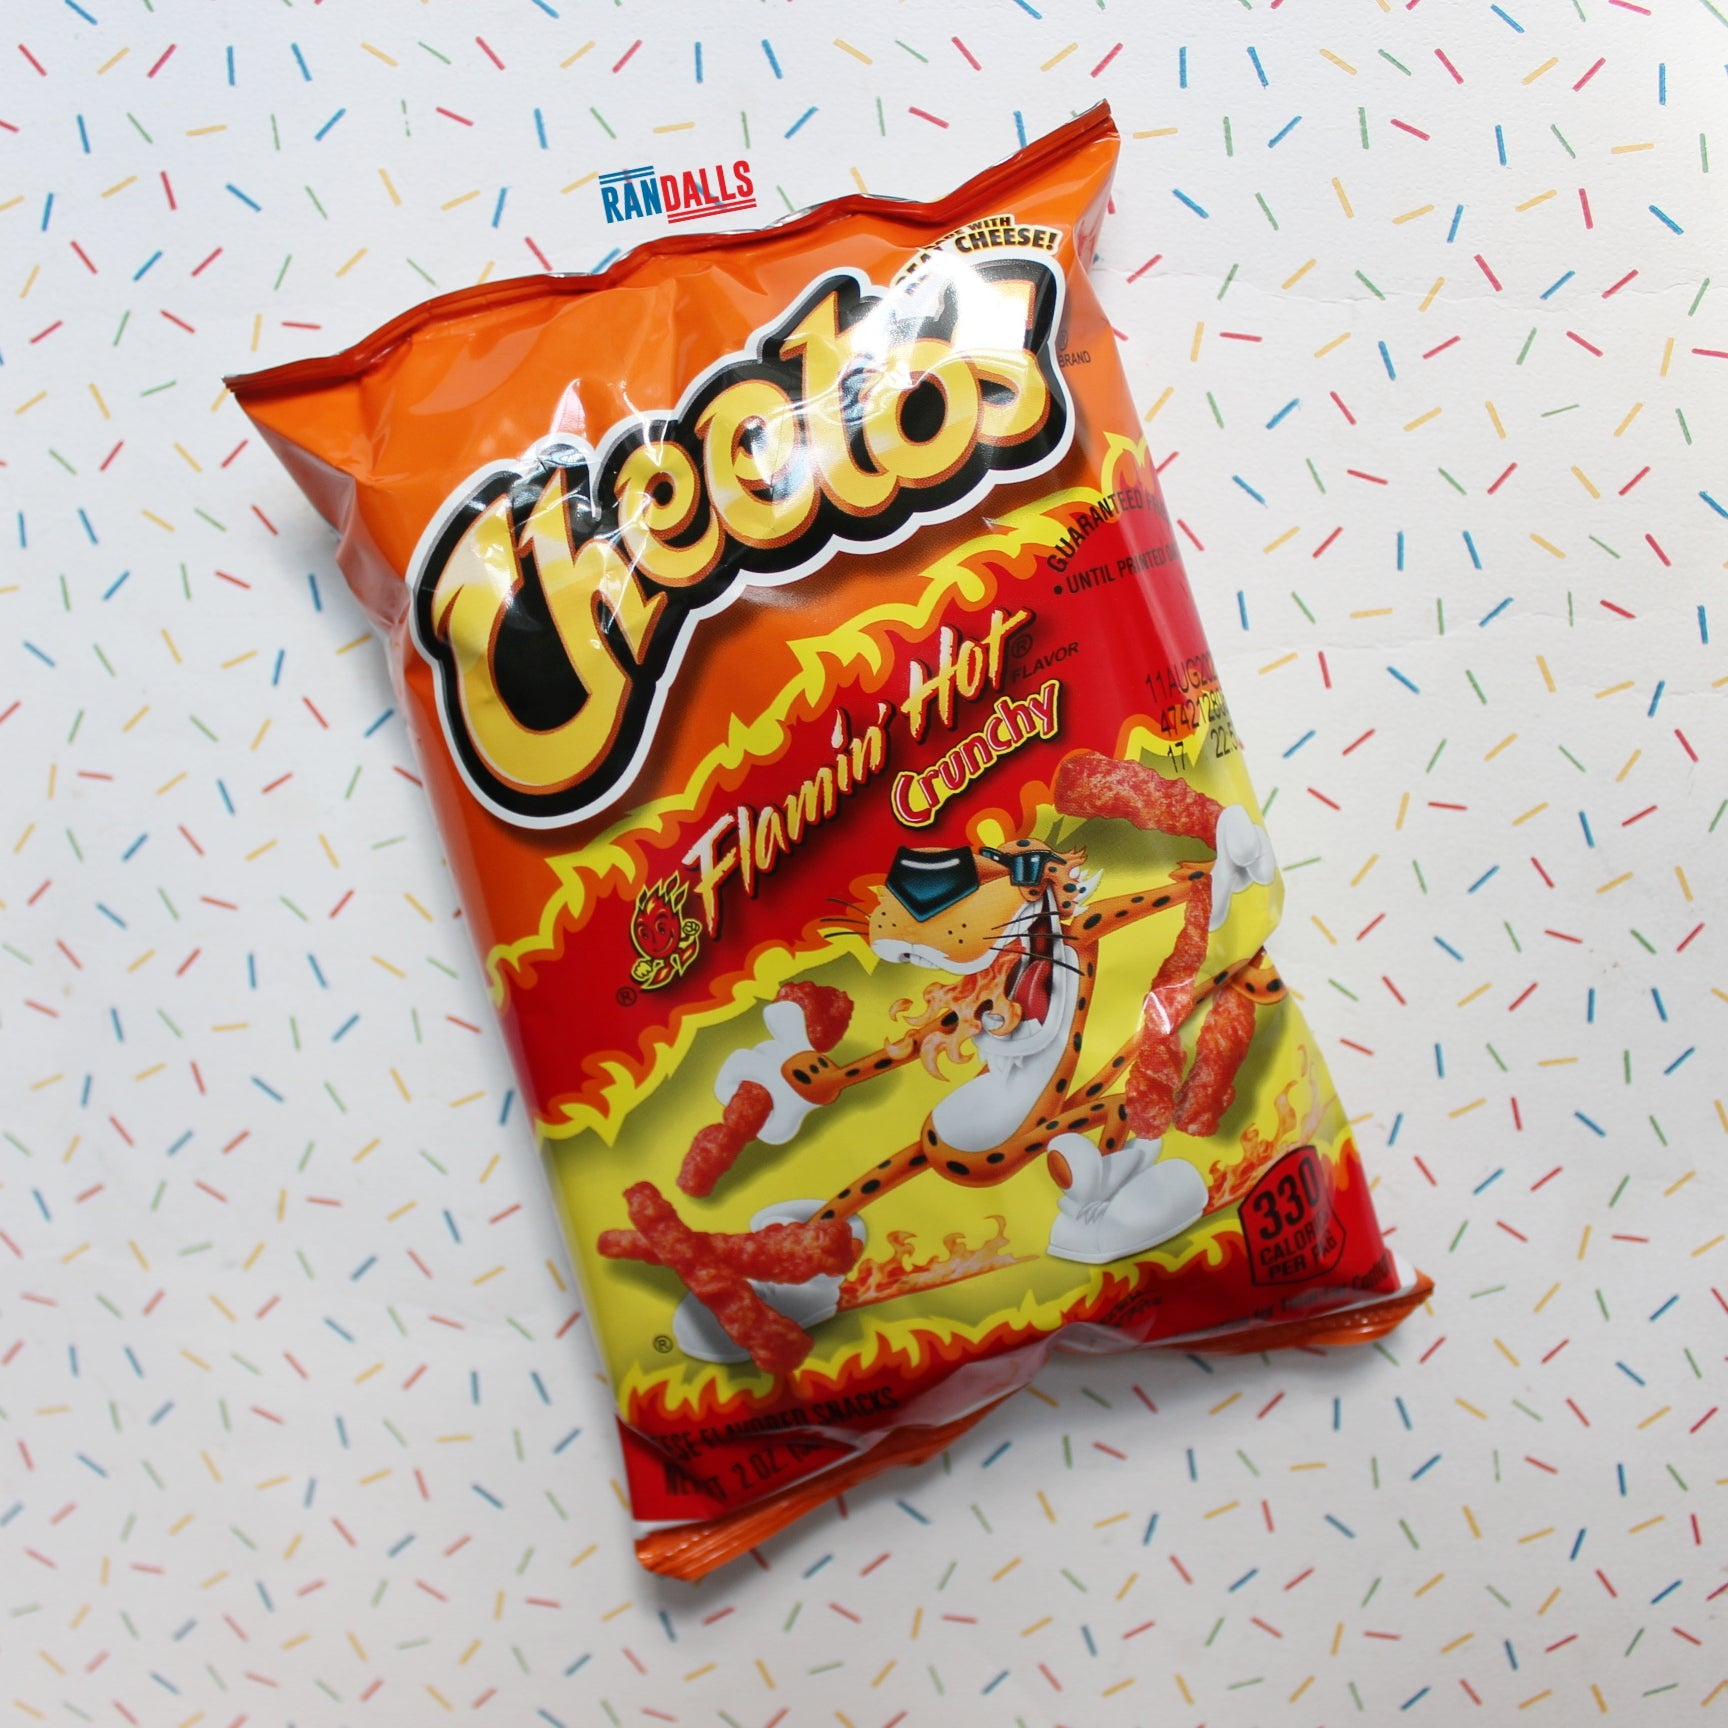 CHEETOS CRUNCHY FLAMIN' HOT [BB DATE 26/01/21]